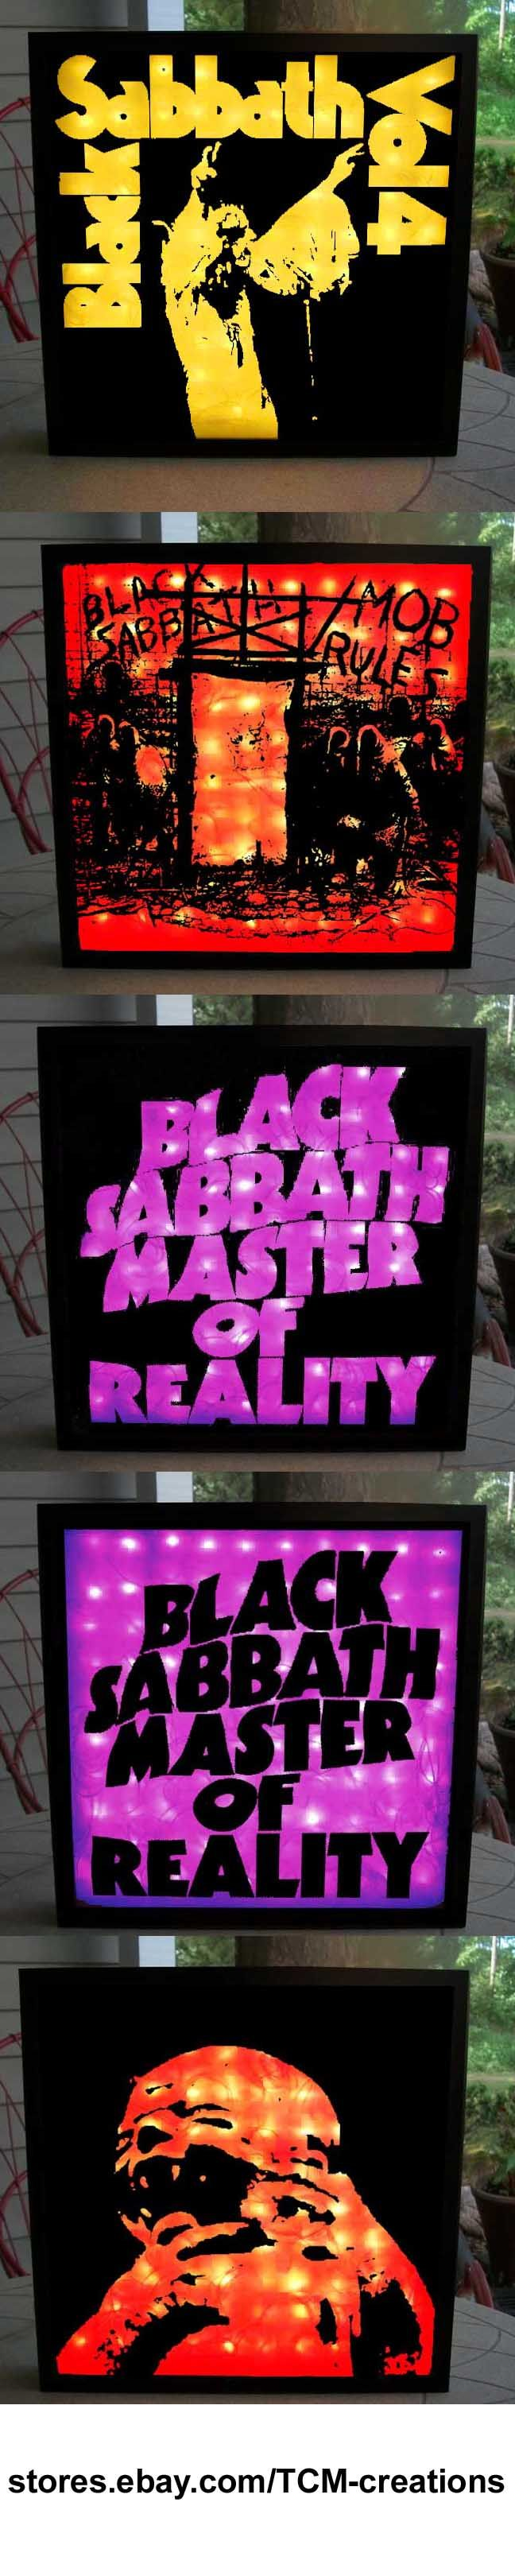 Back Sabbath Shadow Boxes with LED lighting. Ozzy Osbourne, Tony Iommi, Geezer Butler, Bill Ward, Ronnie James Dio, Paranoid, Master Of Reality, Vol. 4, Sabbath Bloody Sabbath, Sabotage, Technical Ecstasy, Never Say Die!, Heaven and Hell, Mob Rules, Born Again, Seventh Star, The Eternal Idol, Headless Cross, Tyr, Dehumanizer, Cross Purposes, Forbidden, 13.